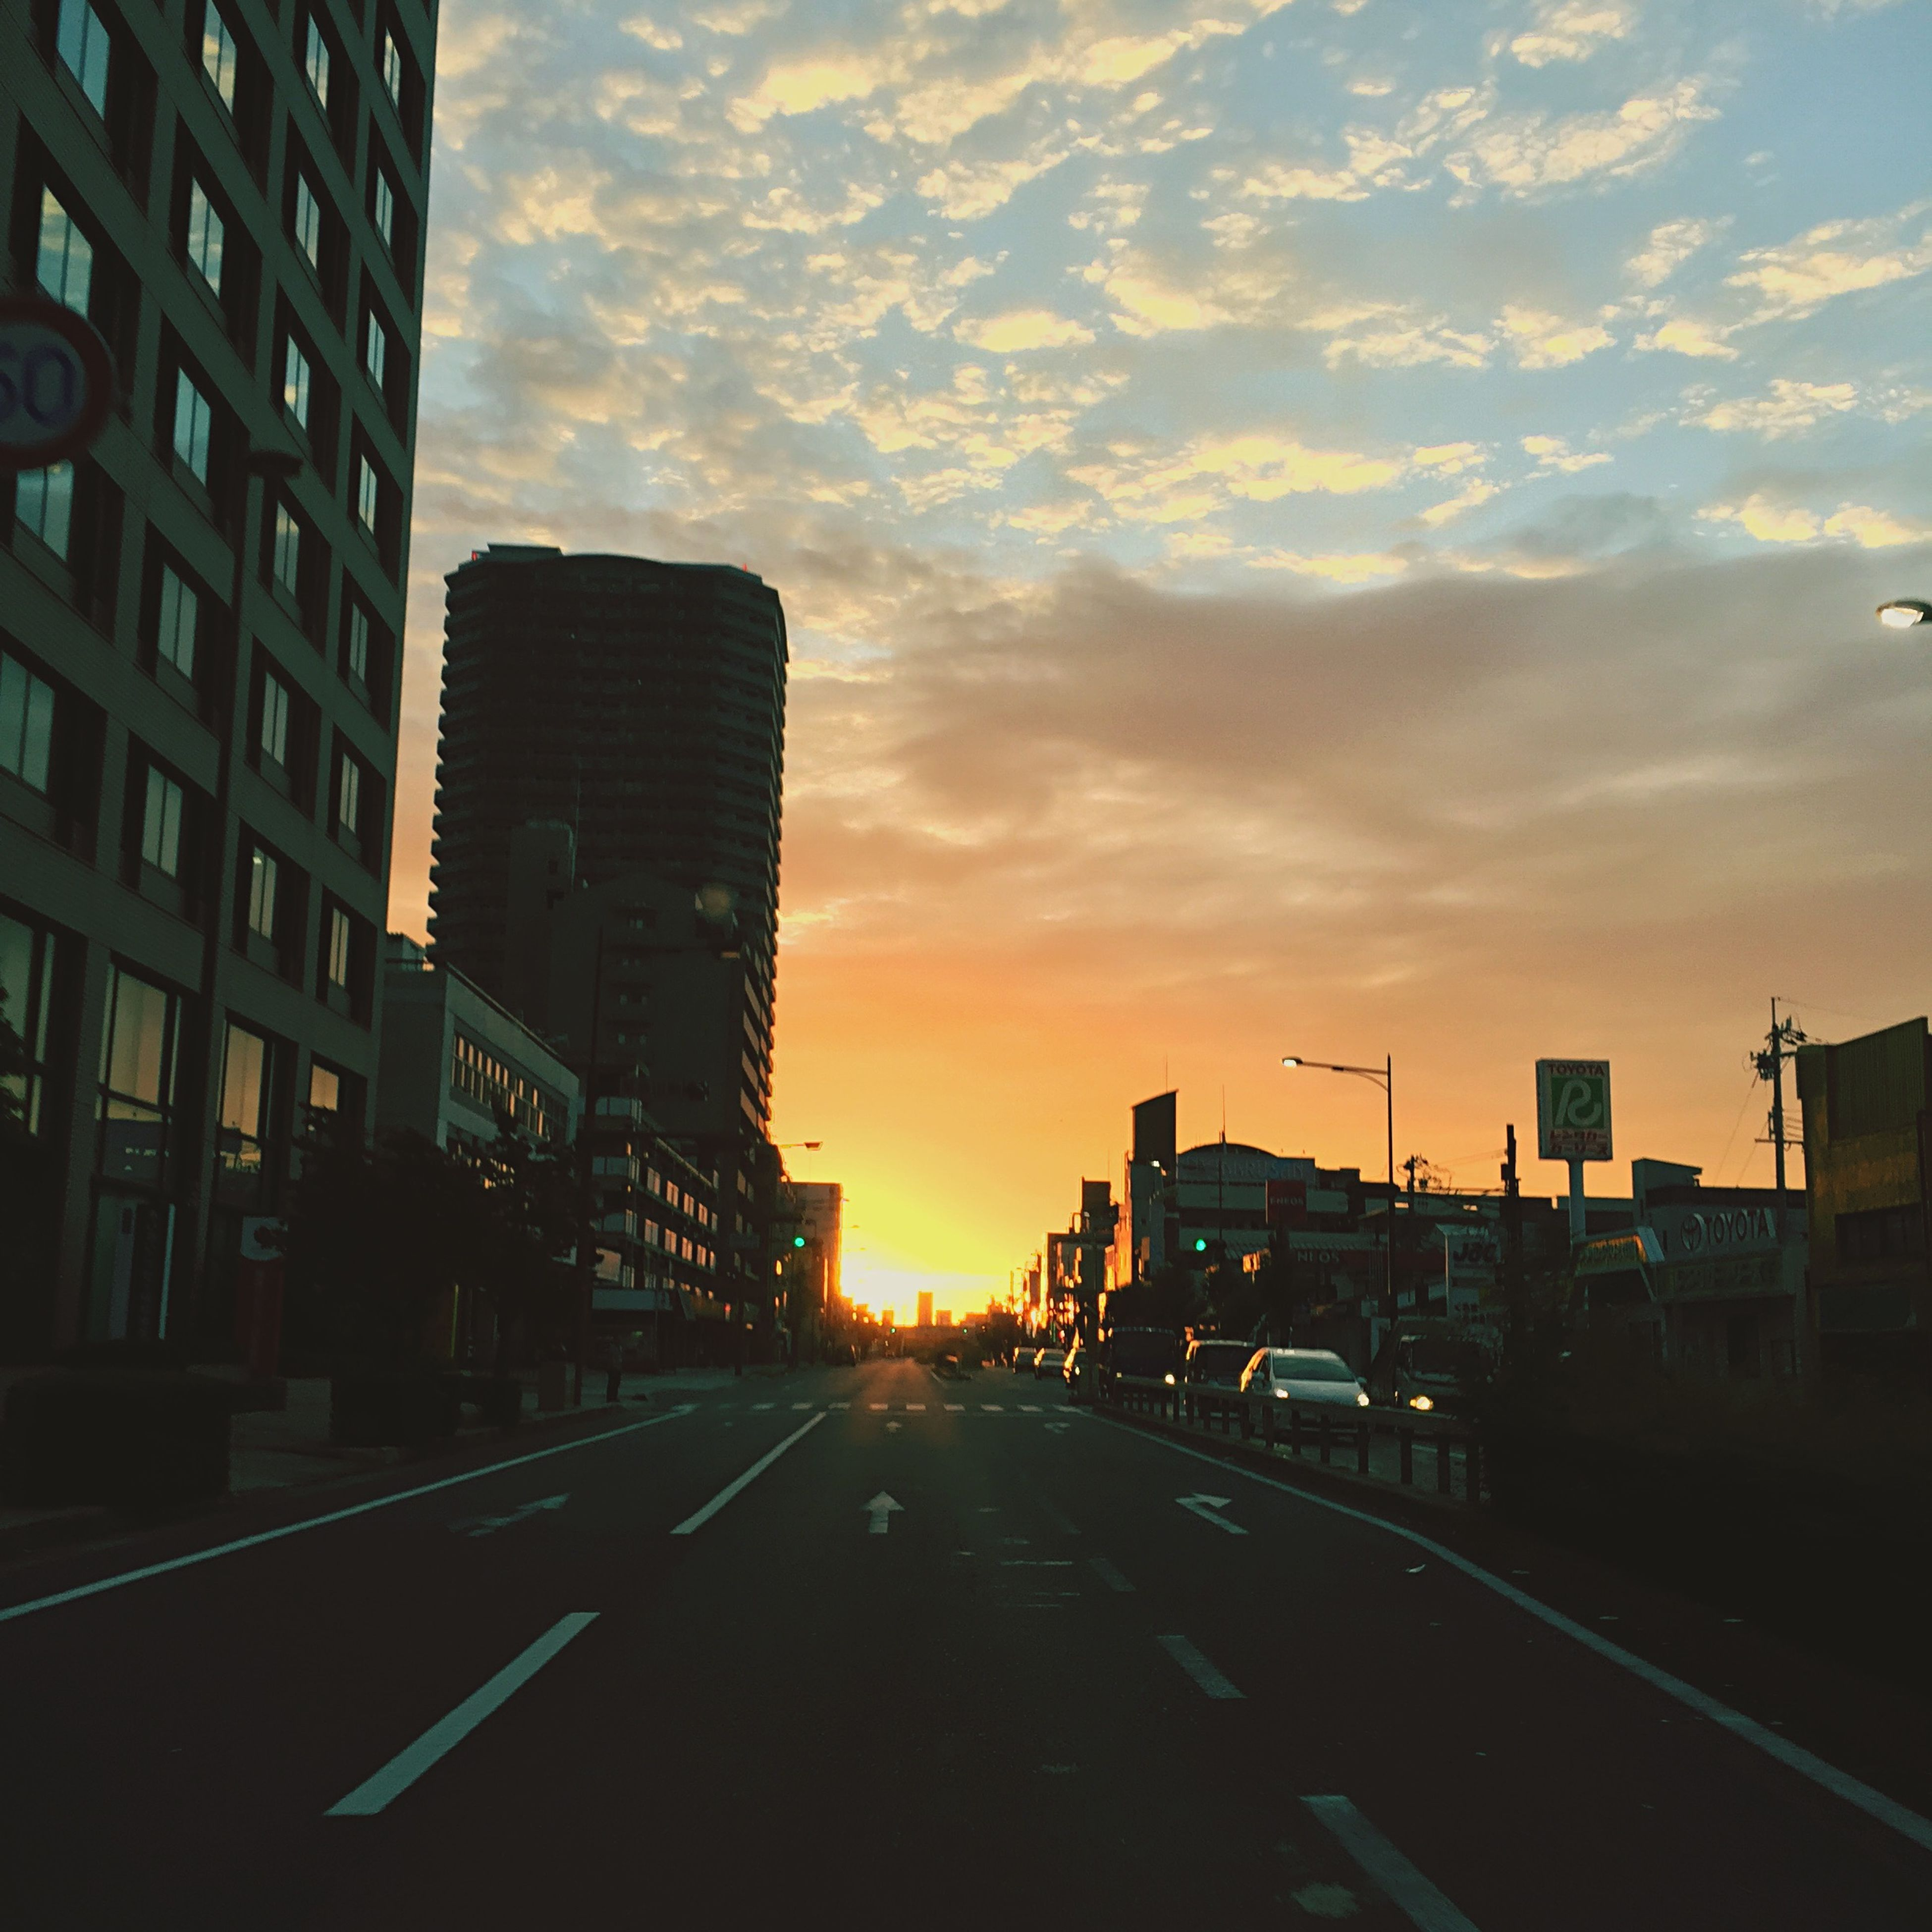 sunset, building exterior, architecture, transportation, built structure, road, the way forward, sky, city, car, street, road marking, diminishing perspective, cloud - sky, land vehicle, orange color, mode of transport, vanishing point, street light, cloud